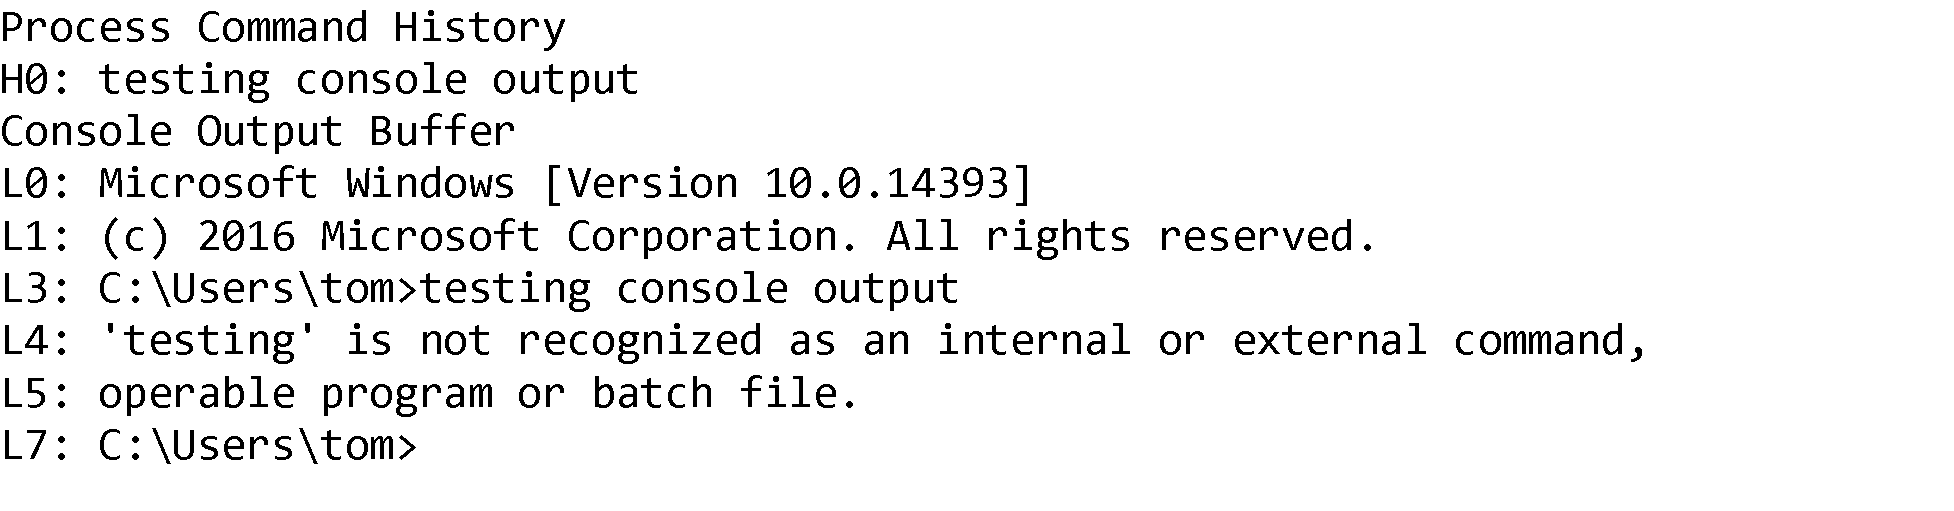 Illusive Networks command prompt output for Live Response Investigation.png